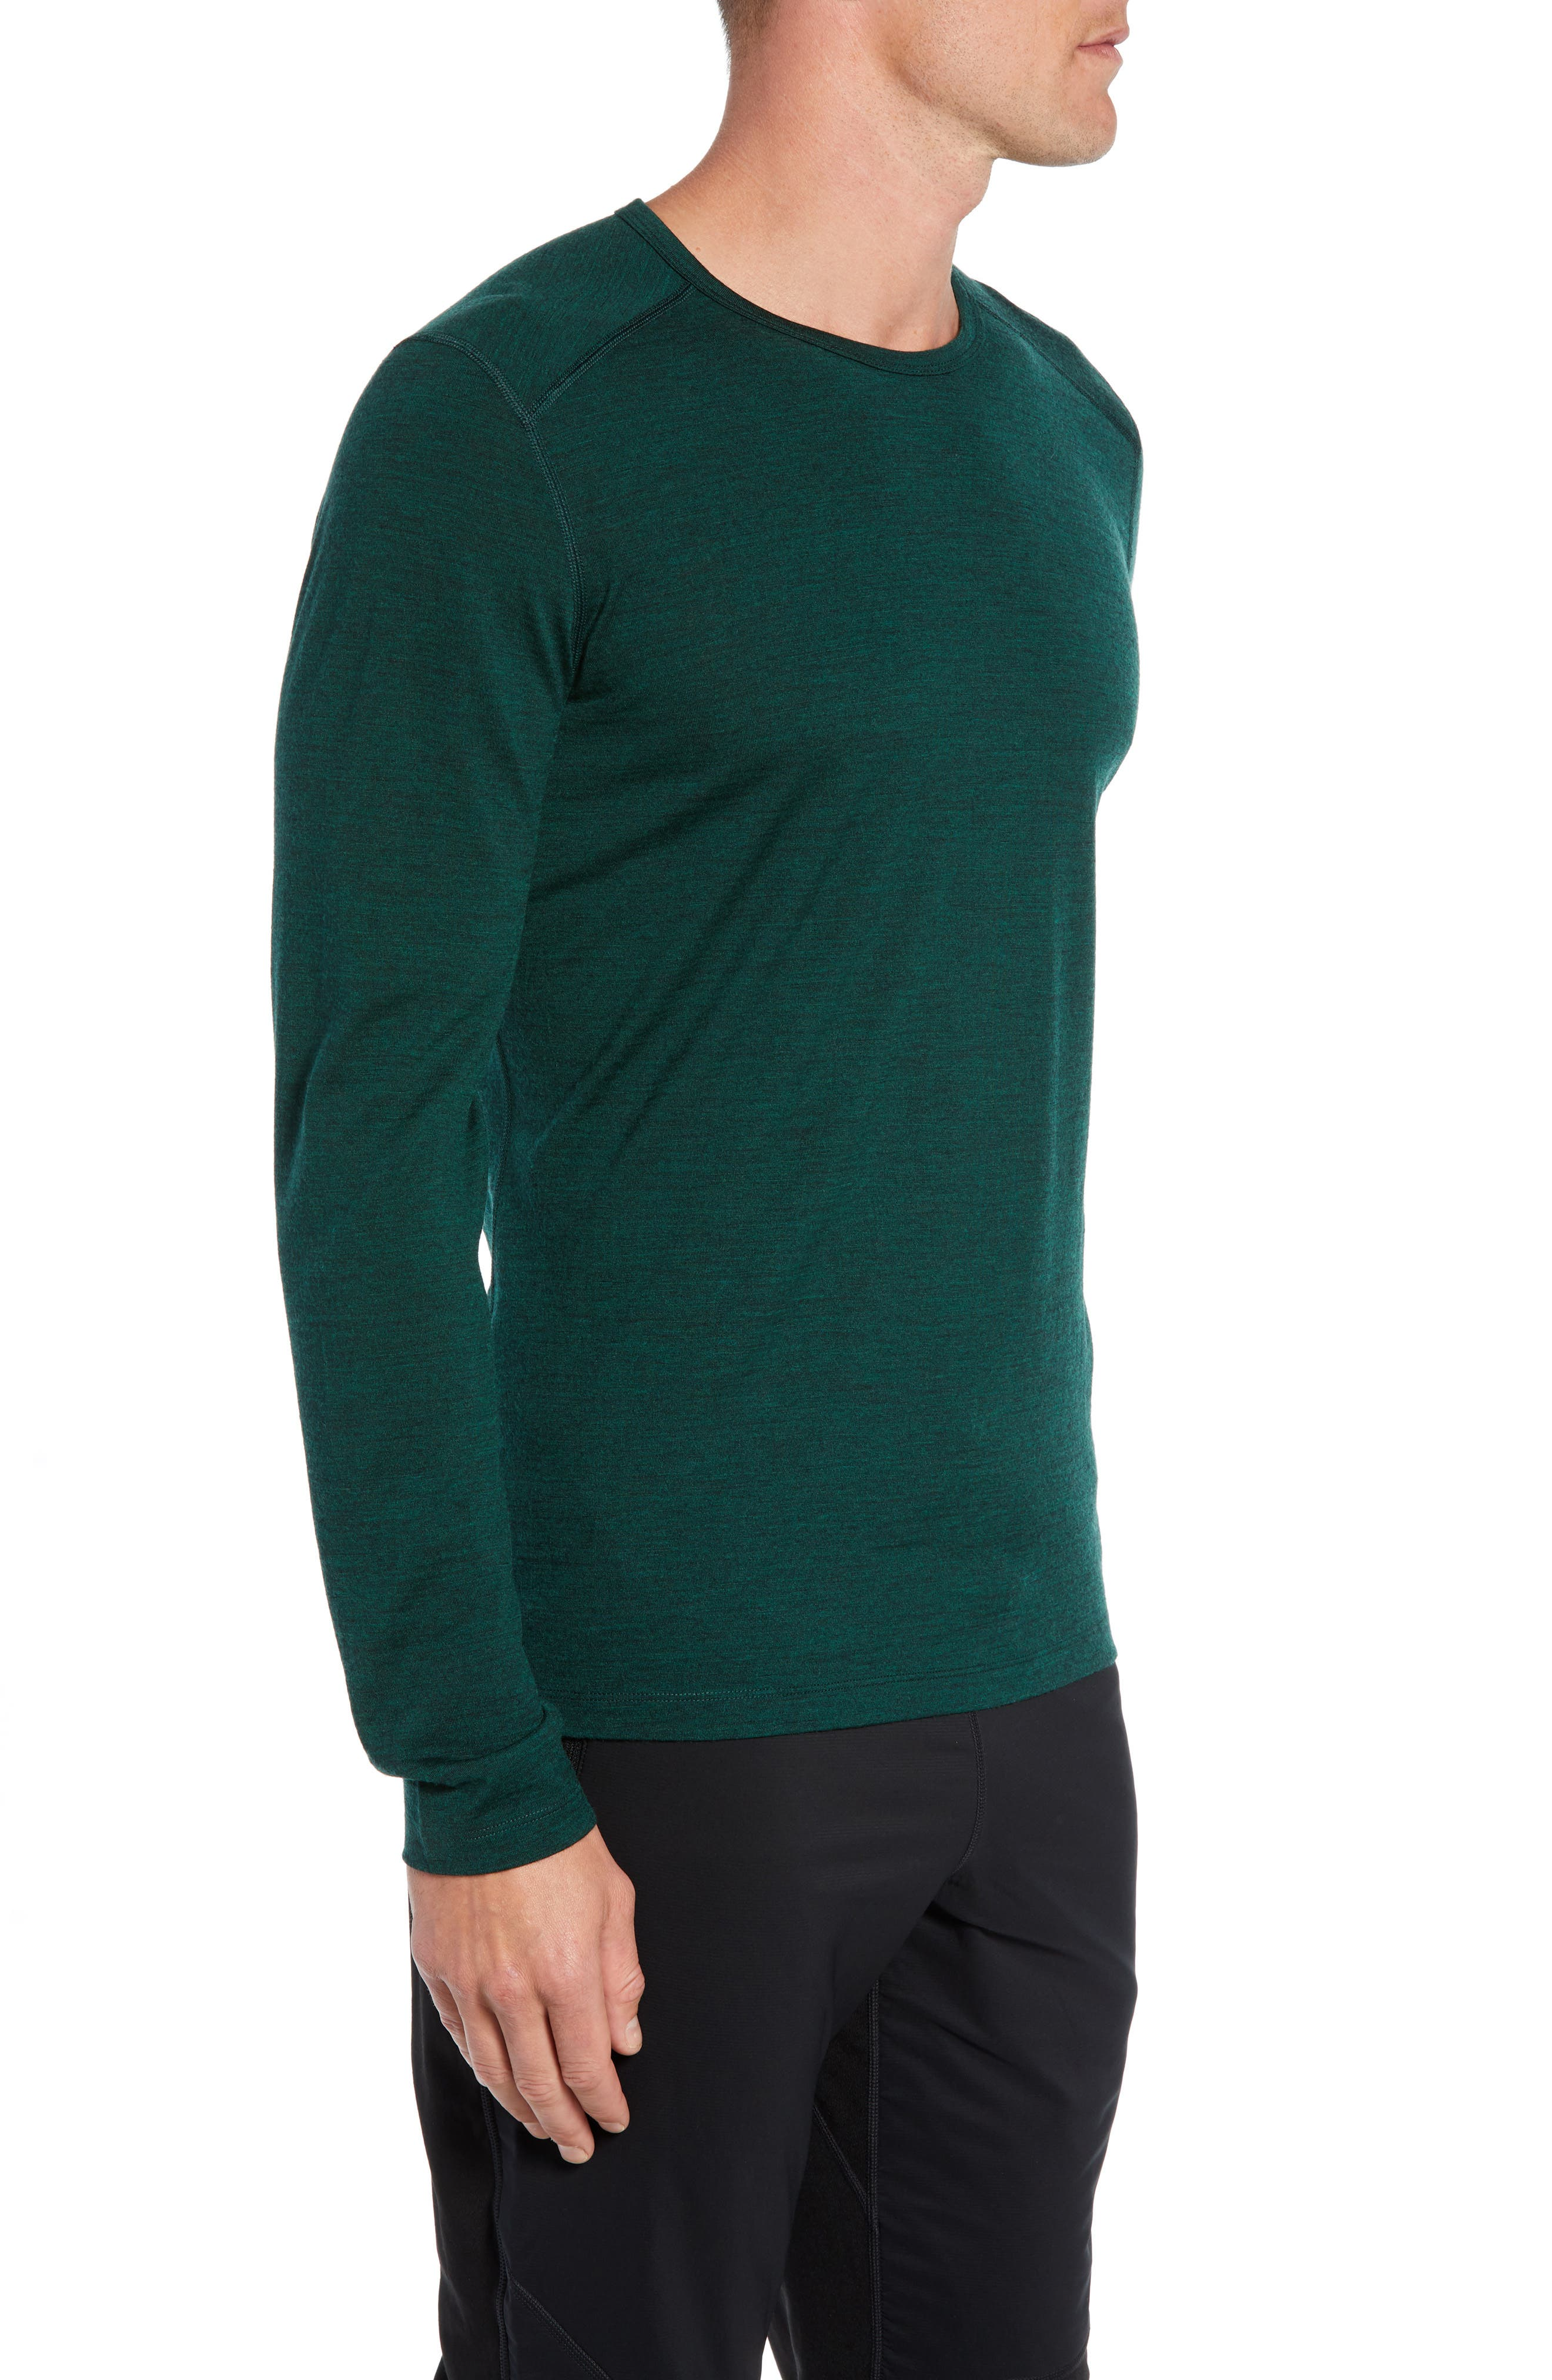 Oasis Slim Merino Wool T-Shirt,                             Alternate thumbnail 3, color,                             IMPERIAL HEATHER